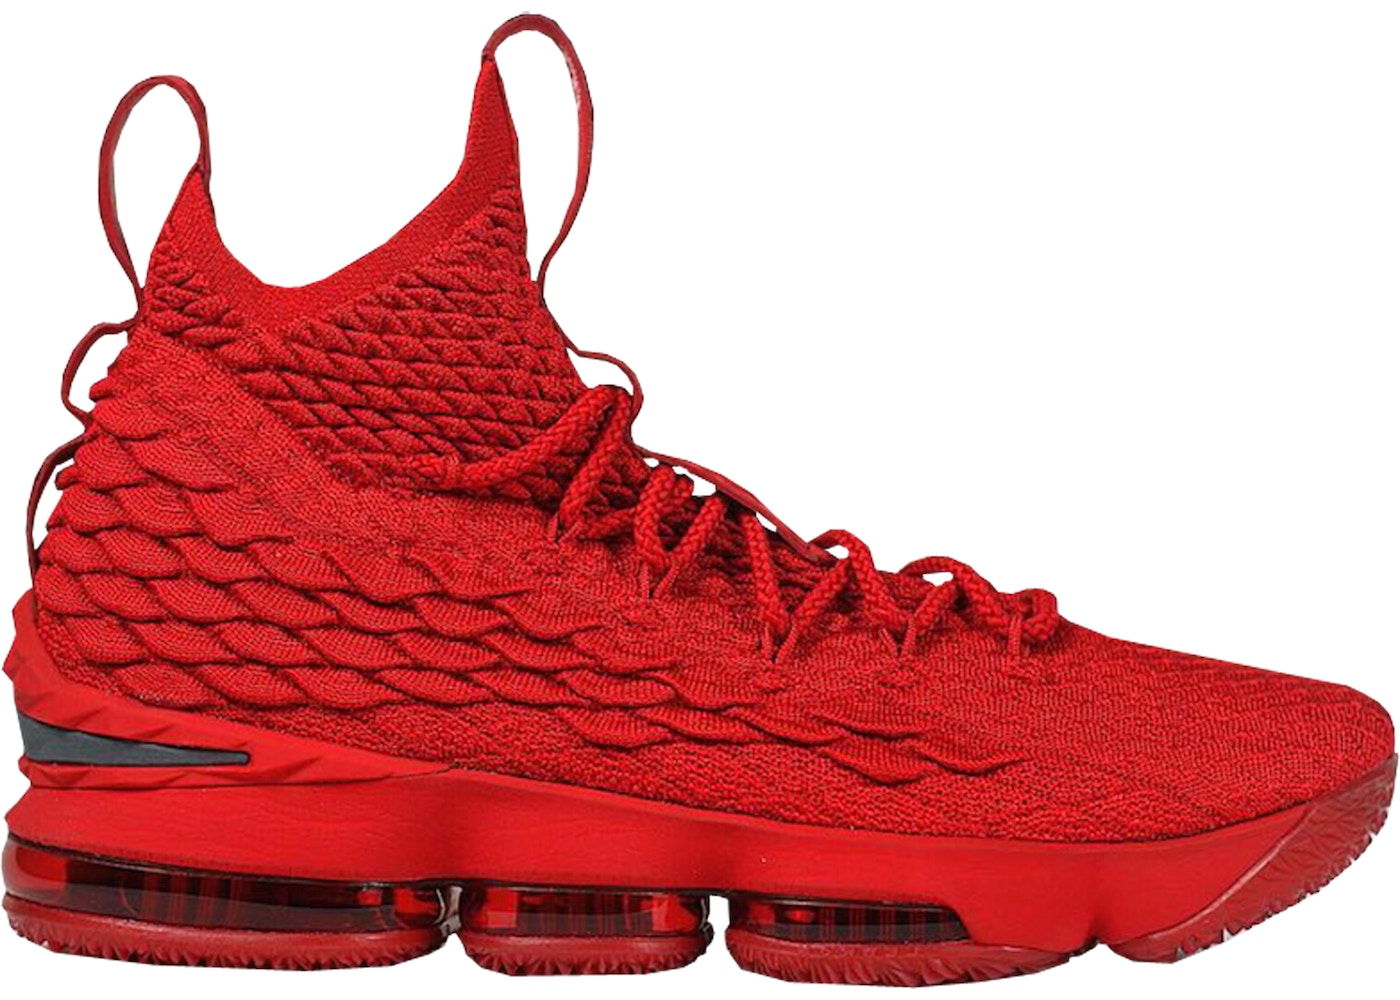 5c55d8036a9 Nike LeBron 15 Shoes - Average Sale Price